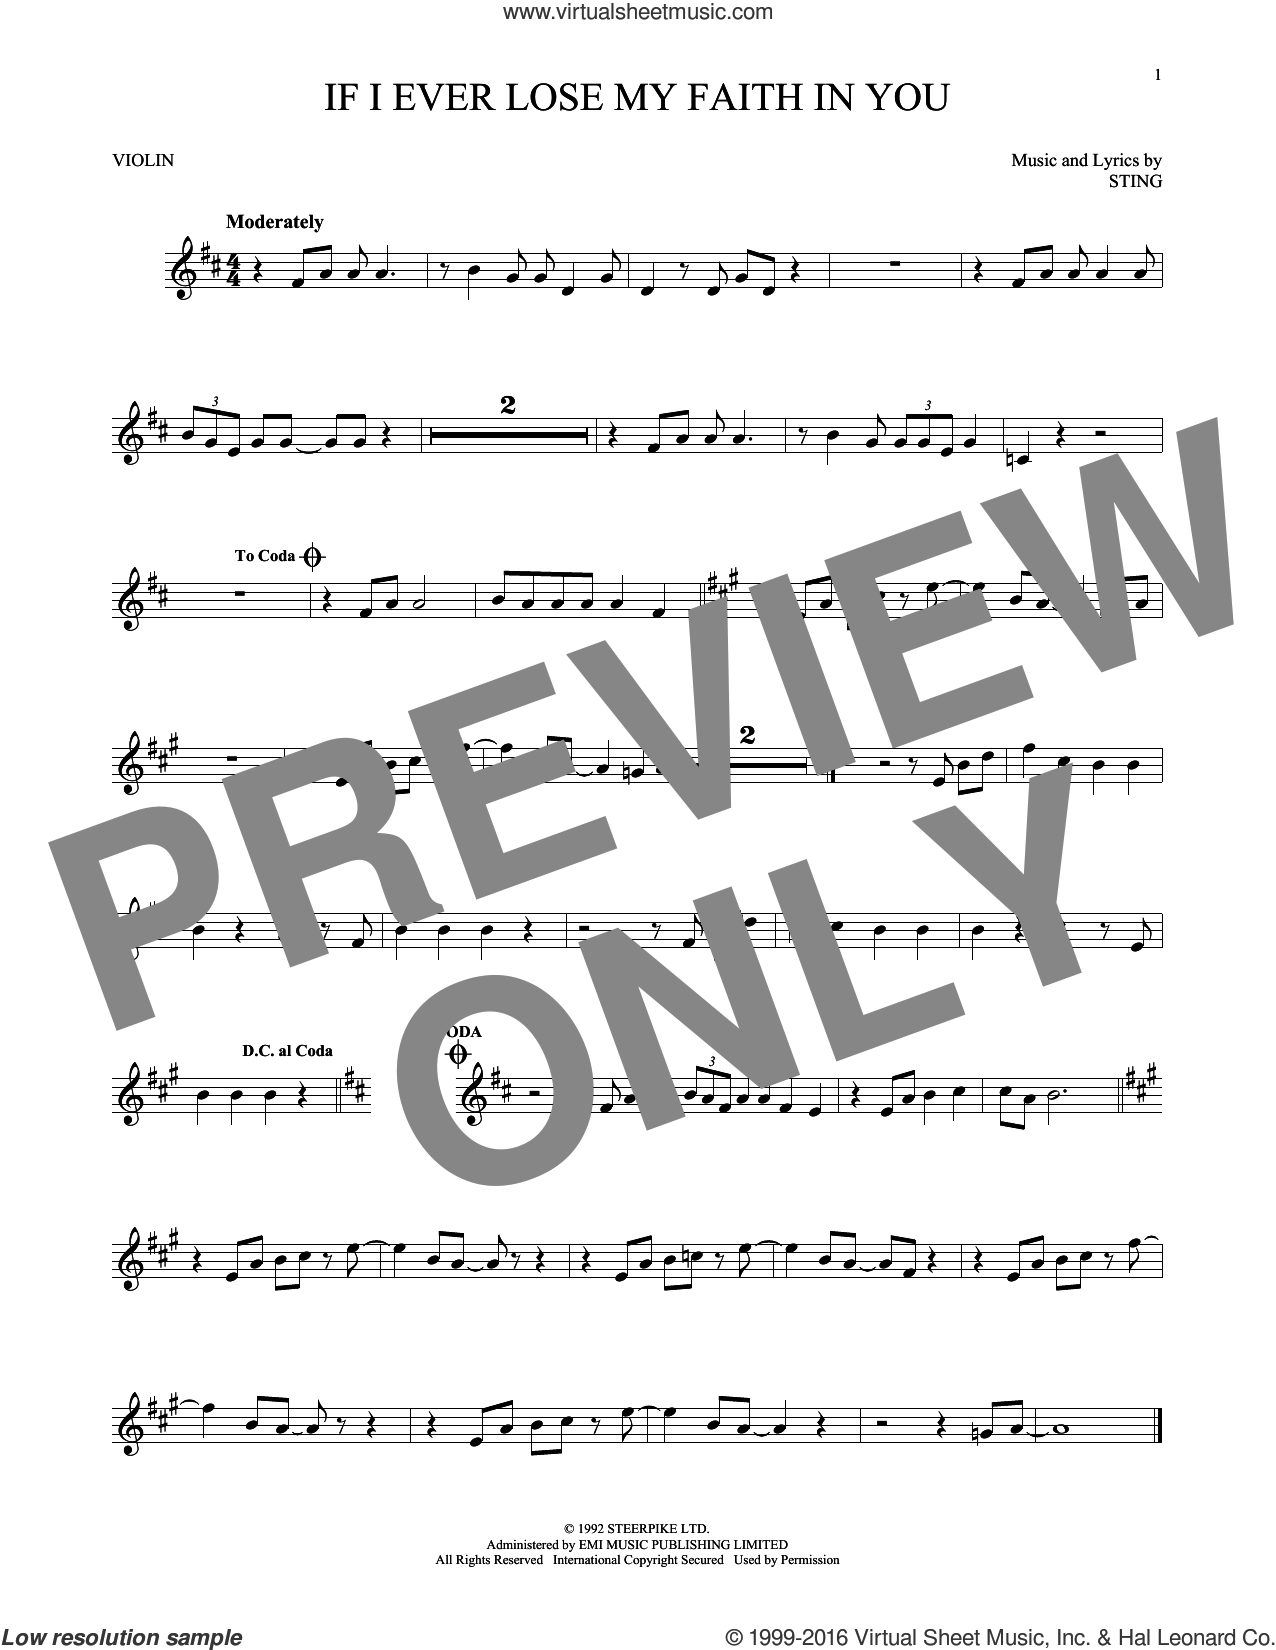 If I Ever Lose My Faith In You sheet music for violin solo by Sting, intermediate skill level